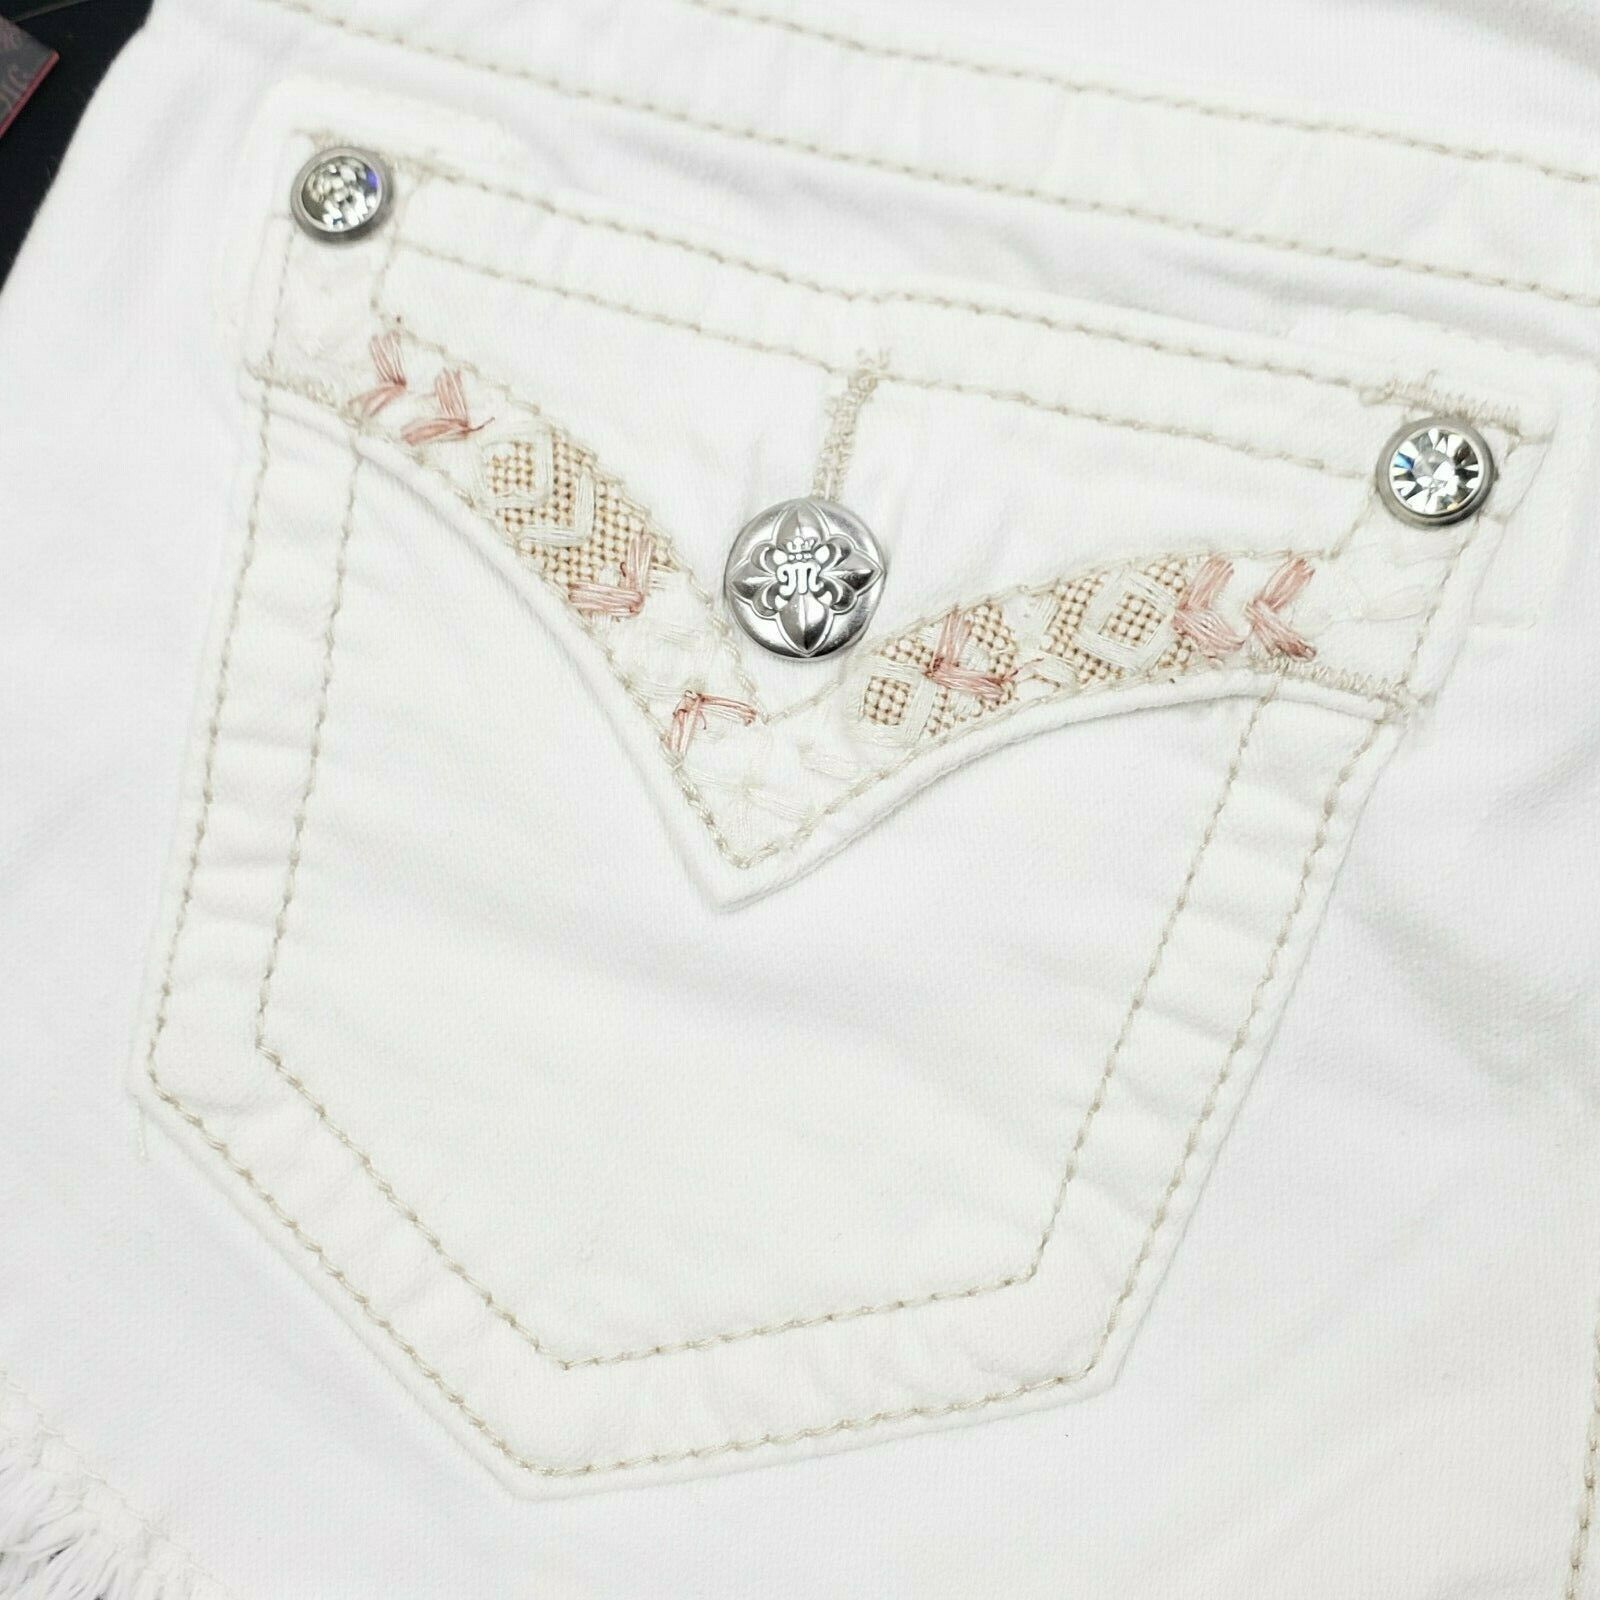 Miss Me Women's Signature Fringe Shorts JP7293H White 25 26 $89.50 Embroidered image 7